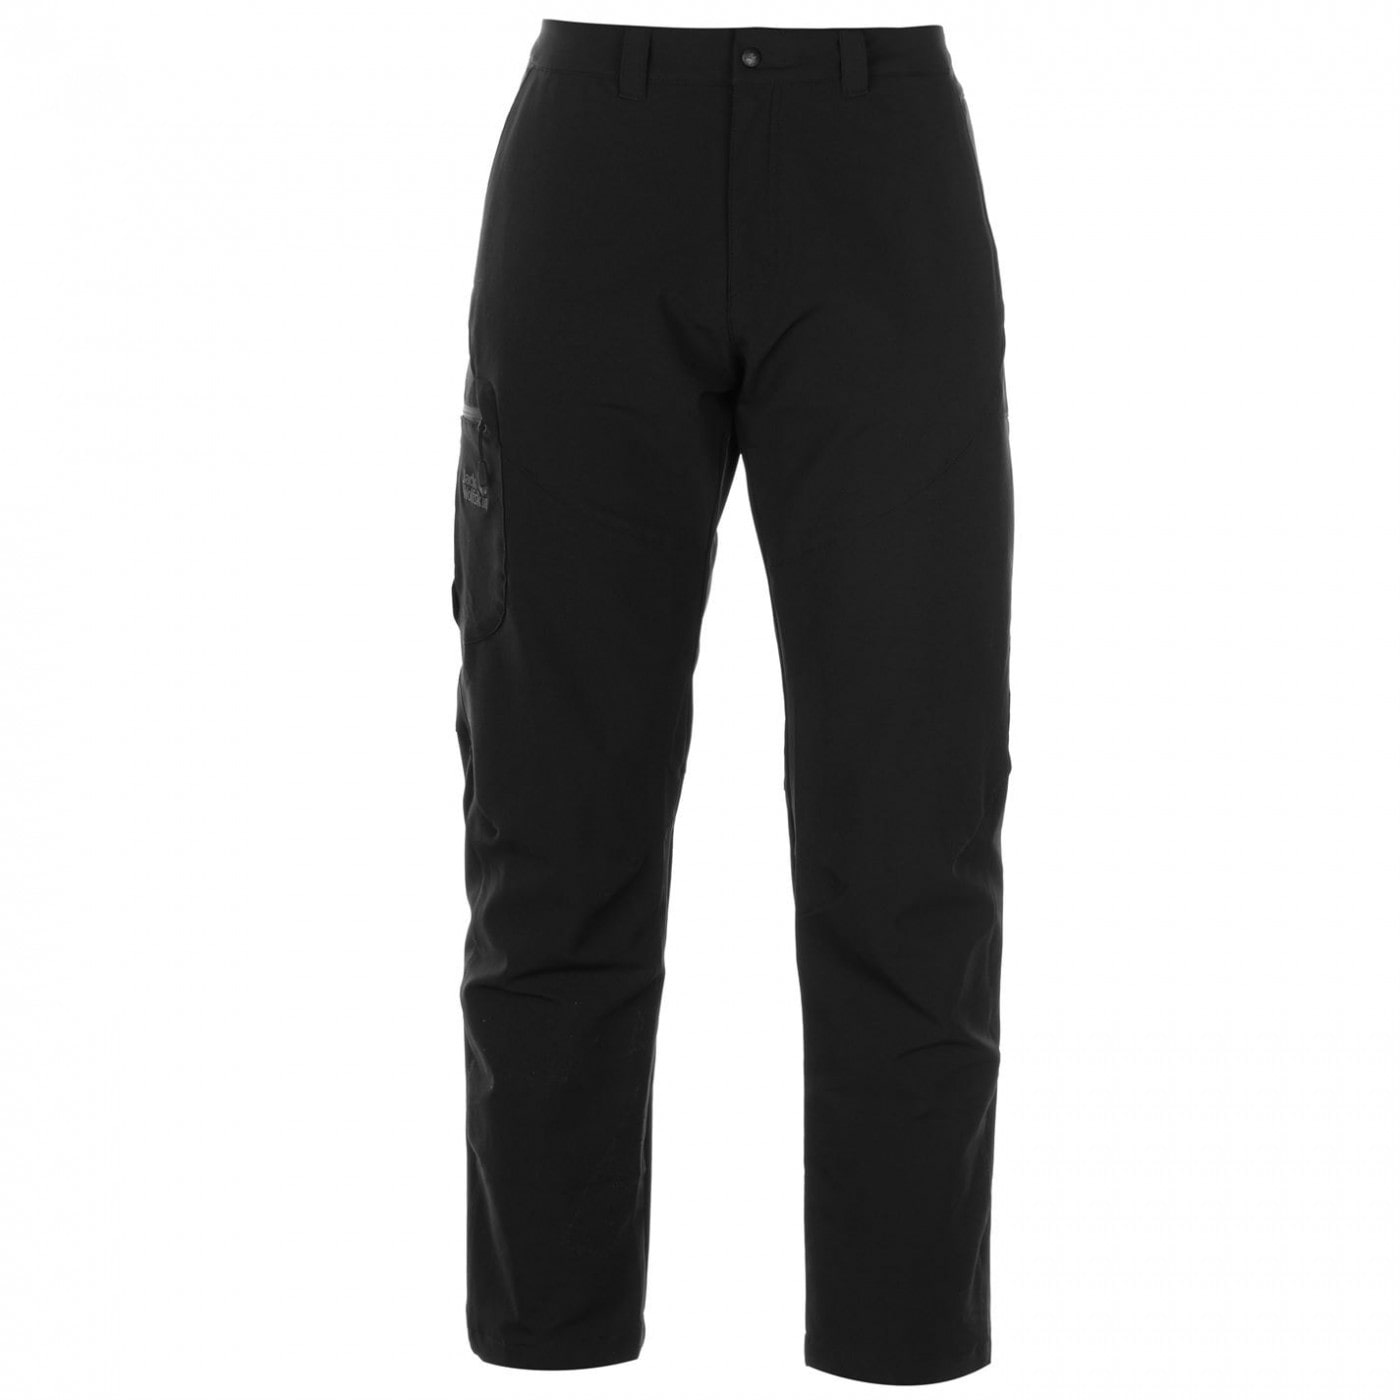 Jack Wolfskin Chilly Track Walking Pants Mens